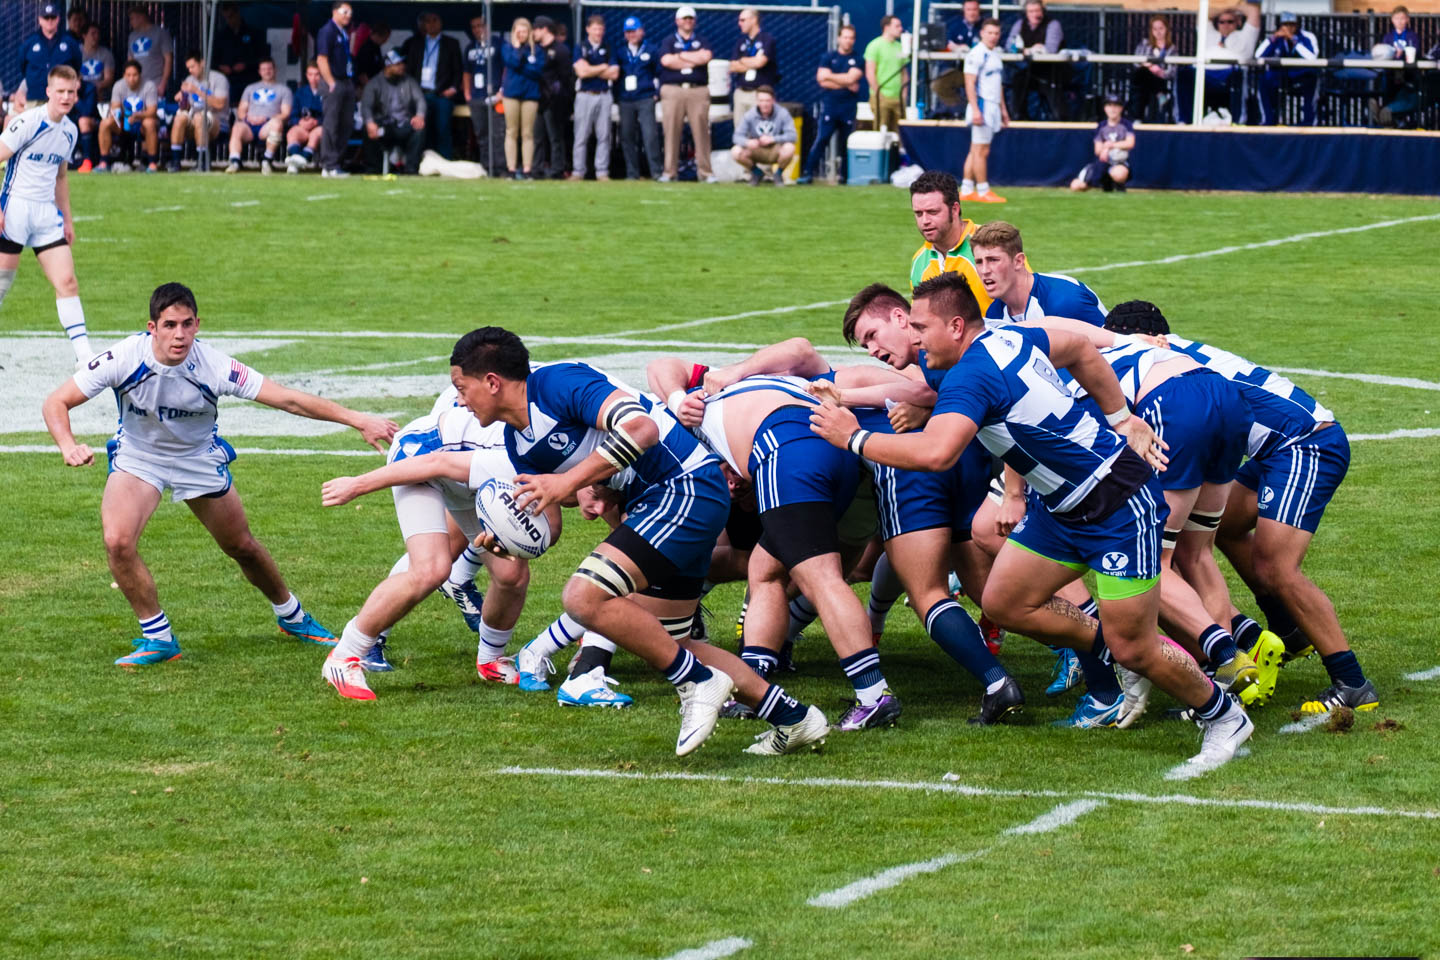 After a scrum the ball is carried by BYU